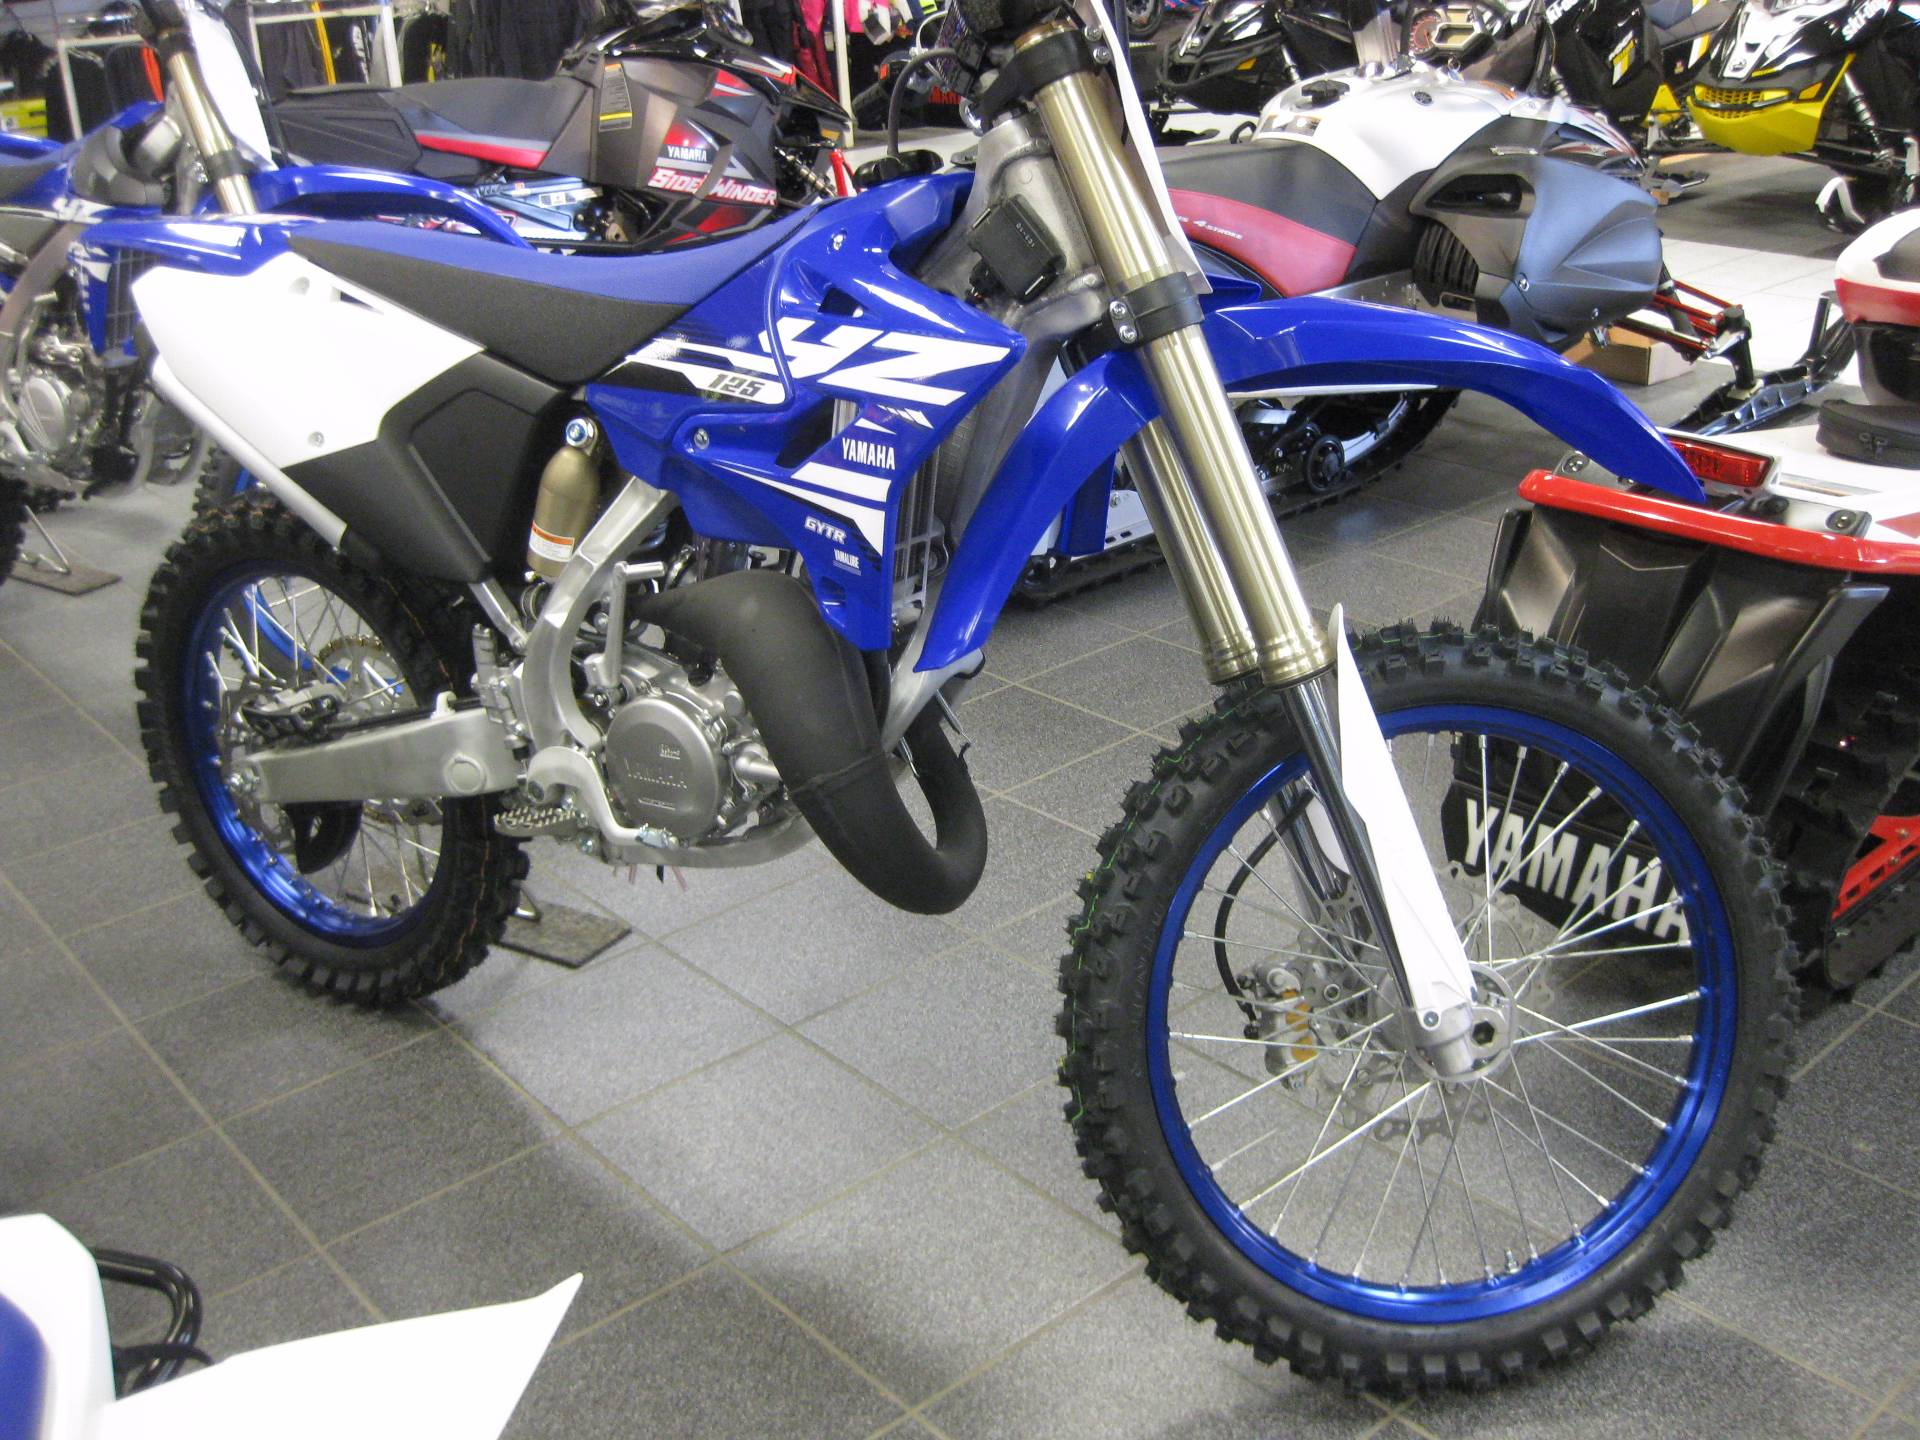 New 2018 yamaha yz125 motorcycles in wisconsin rapids wi for Yamaha installment financing